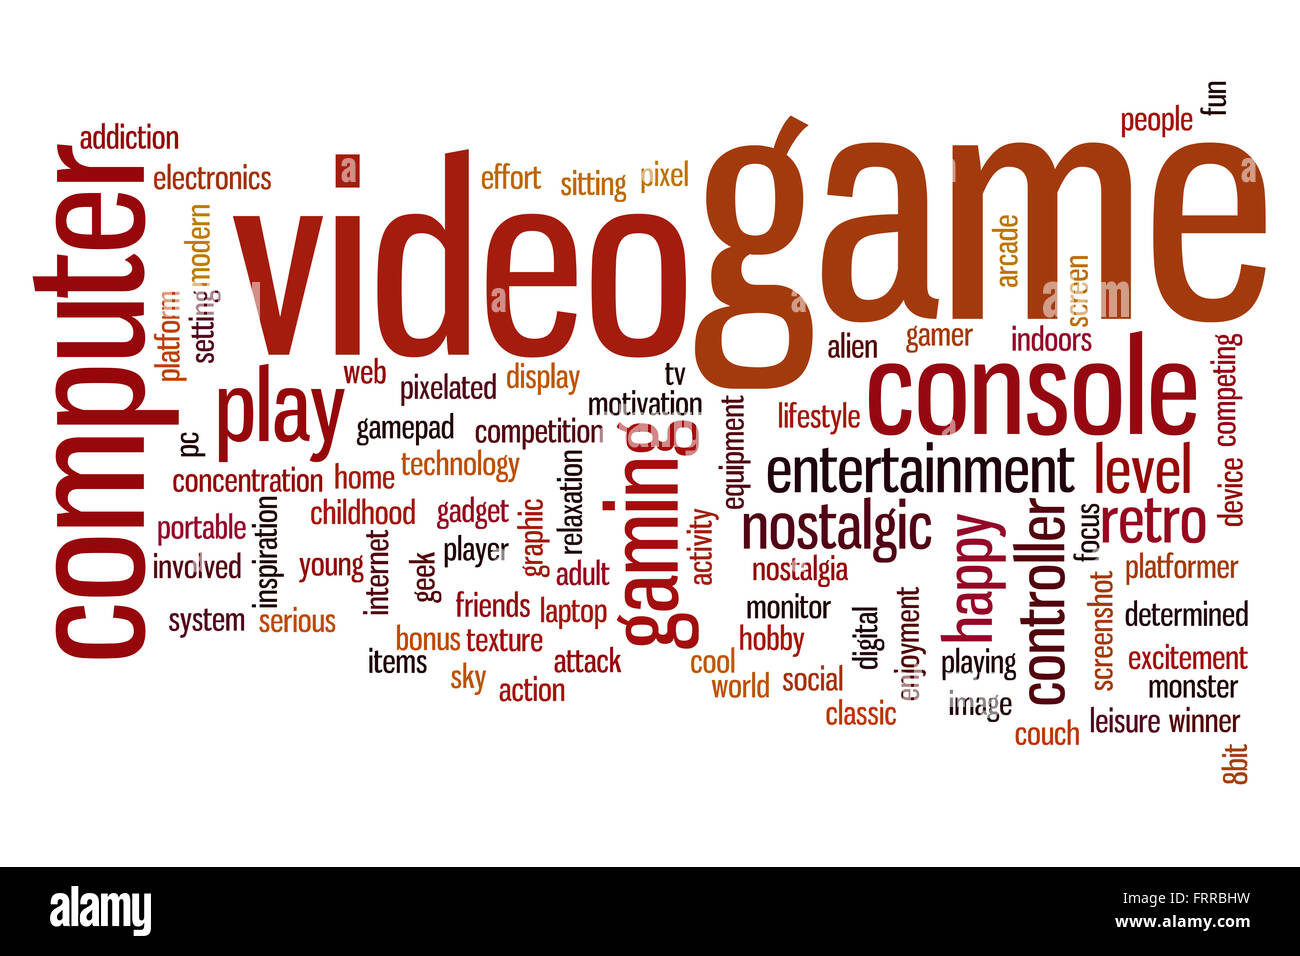 Video game concept word cloud background - Stock Image